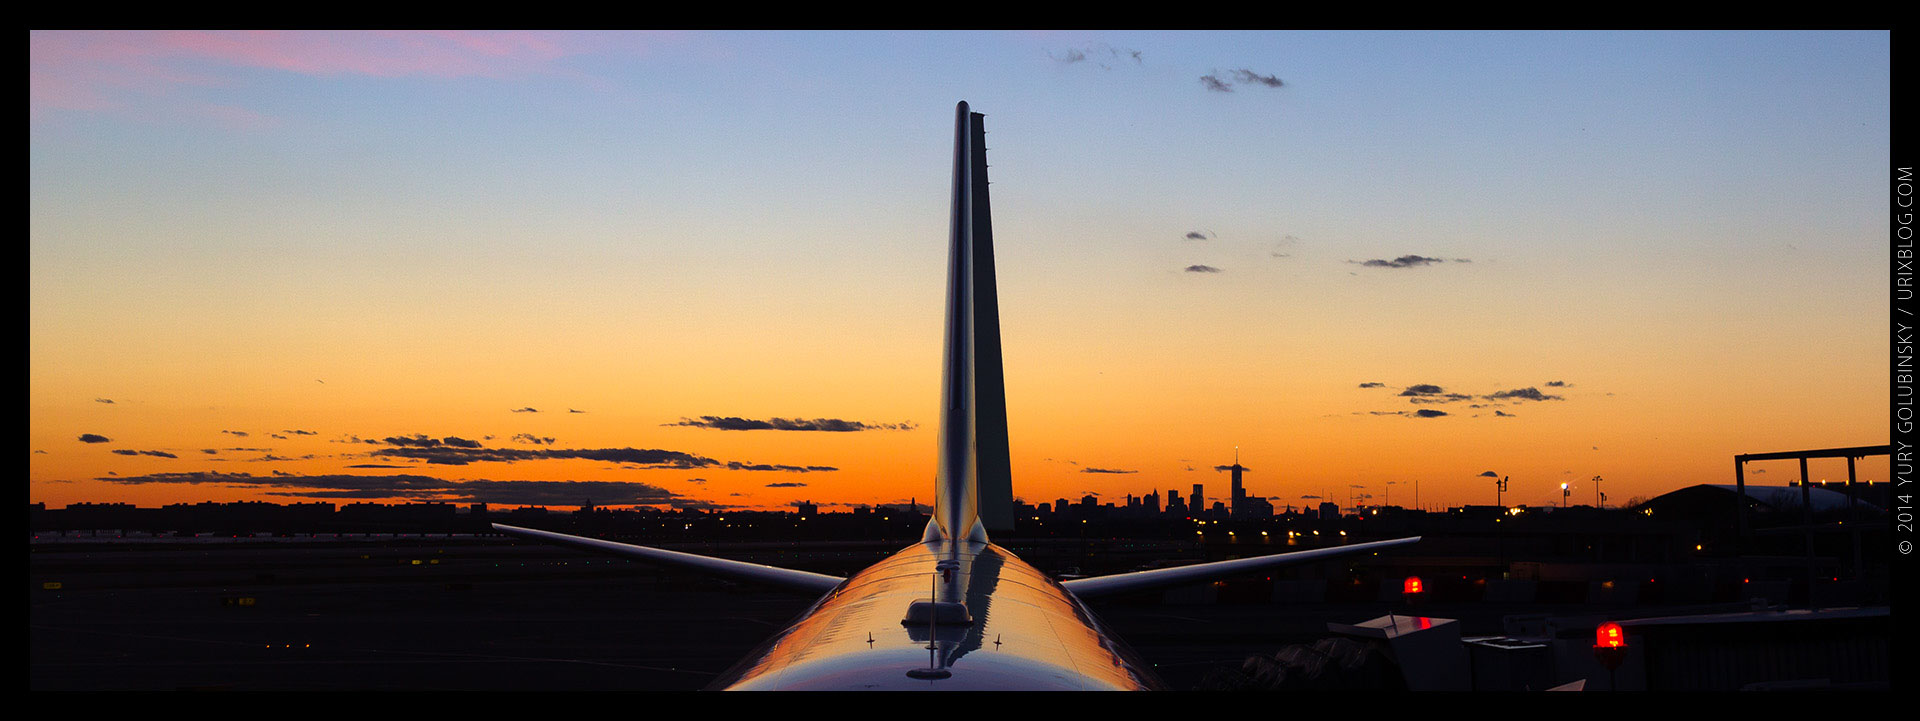 sunset, airplane, reflection, sky, Manhattan, New York, NYC, JFK, USA, airport, 2014, panorama, horizon, city